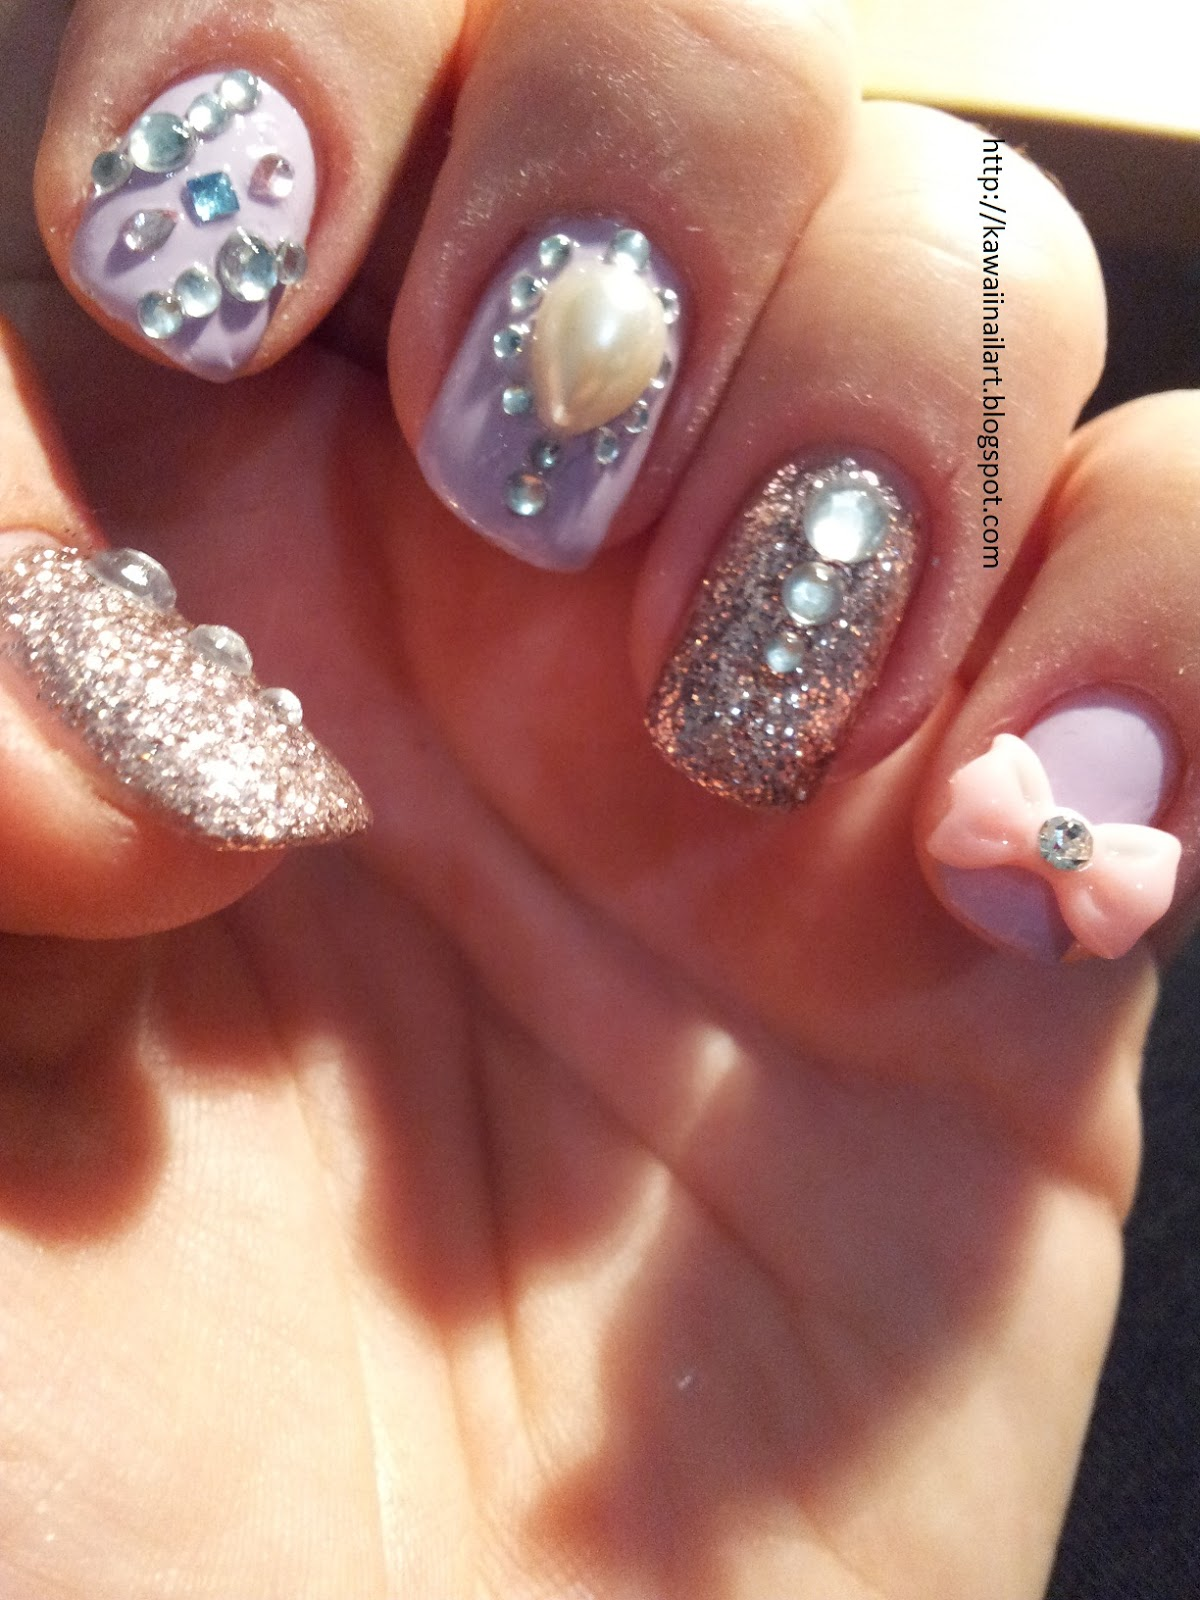 Impressive Nail Art with Rhinestones 1200 x 1600 · 260 kB · jpeg